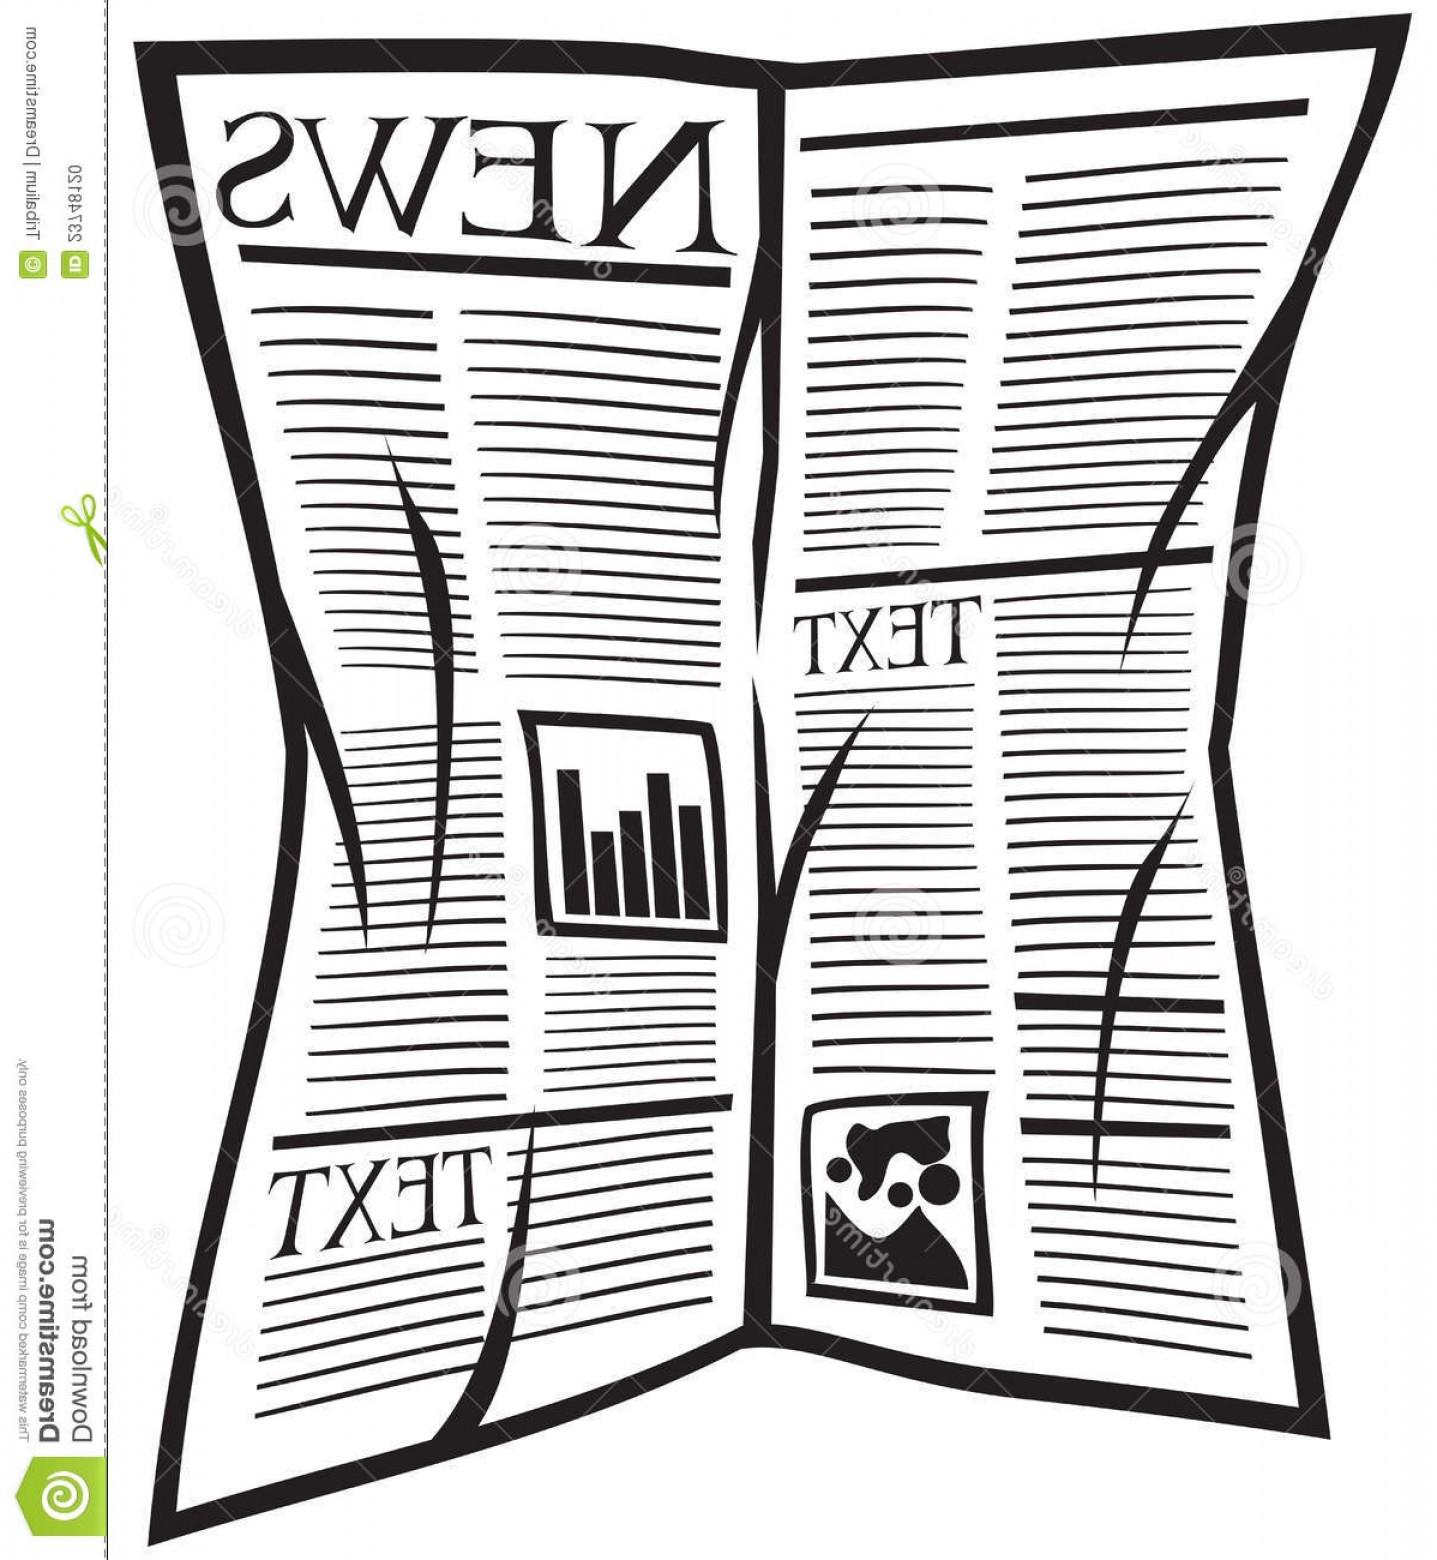 Newspaper Clip Art Vector: Stock Photo Vector Newspaper Icon Image